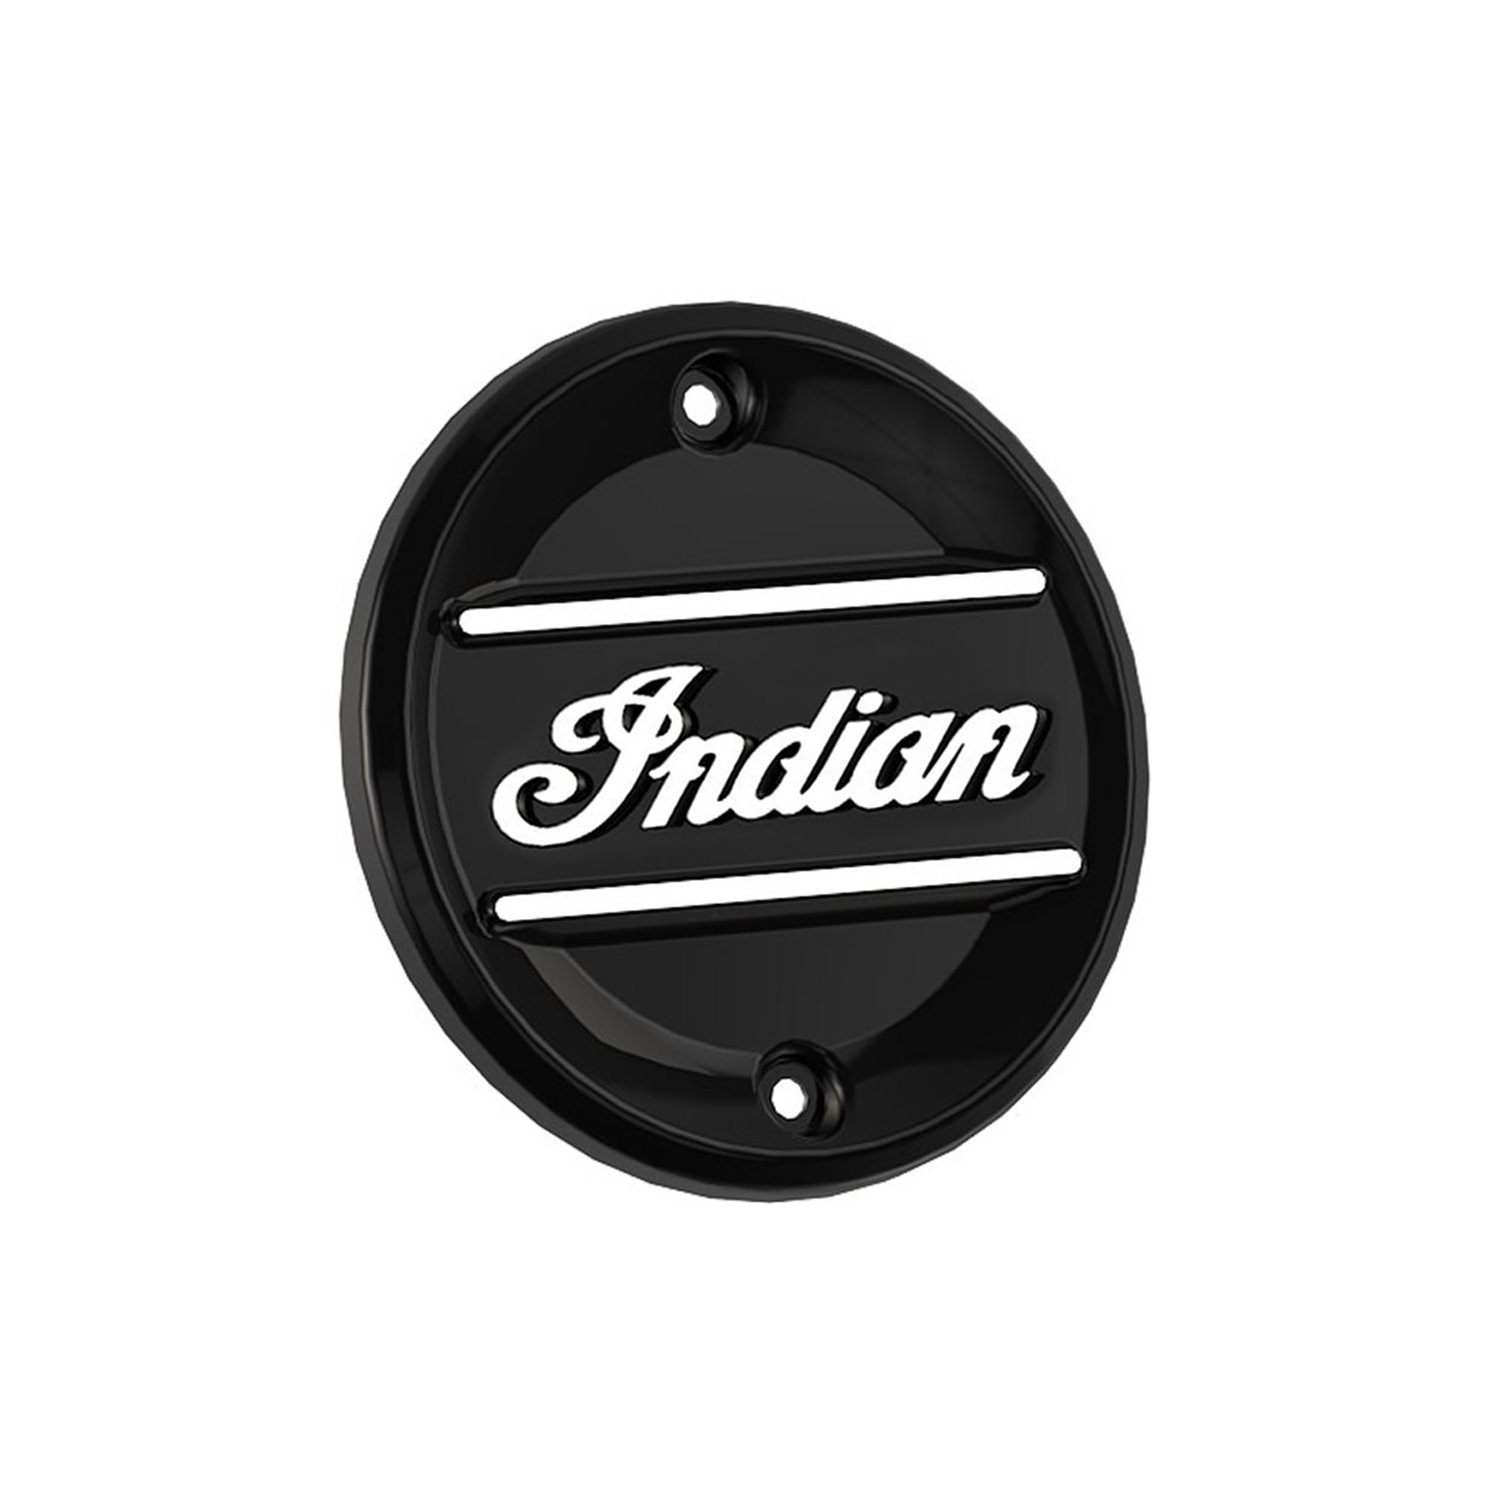 Primary Engine Cover – Black